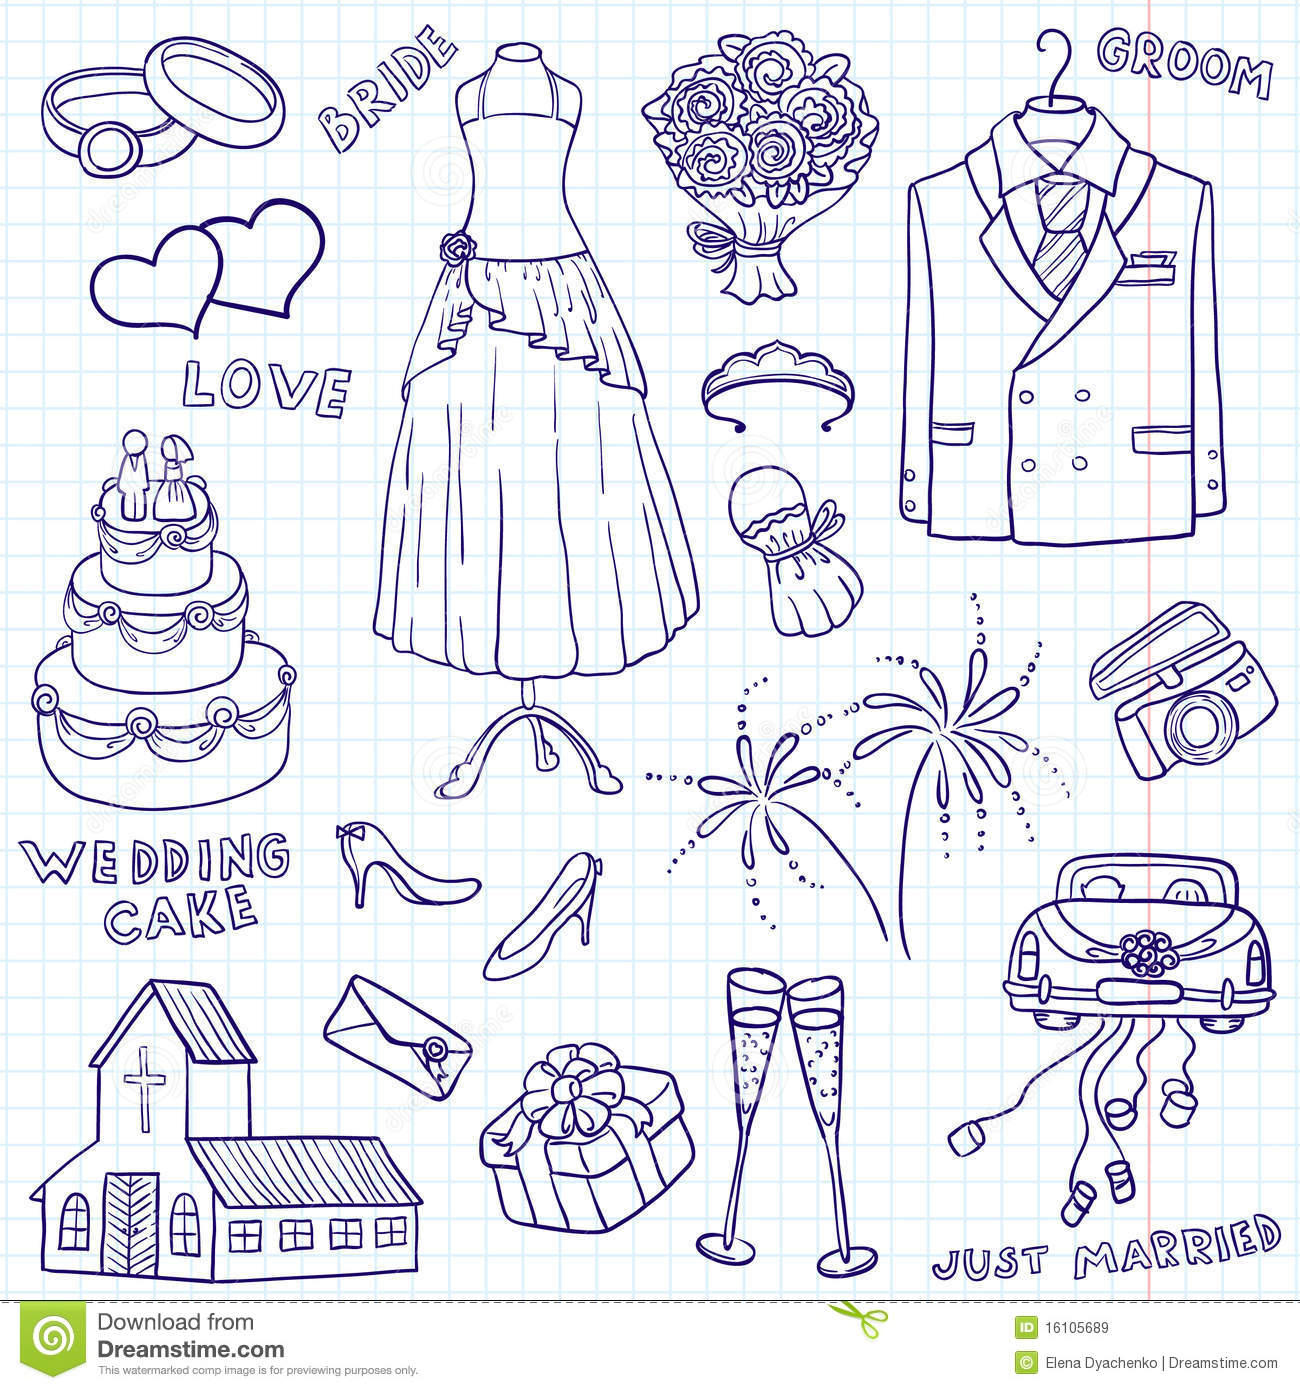 Wedding Doodles Royalty Free Stock Images - Image: 16105689